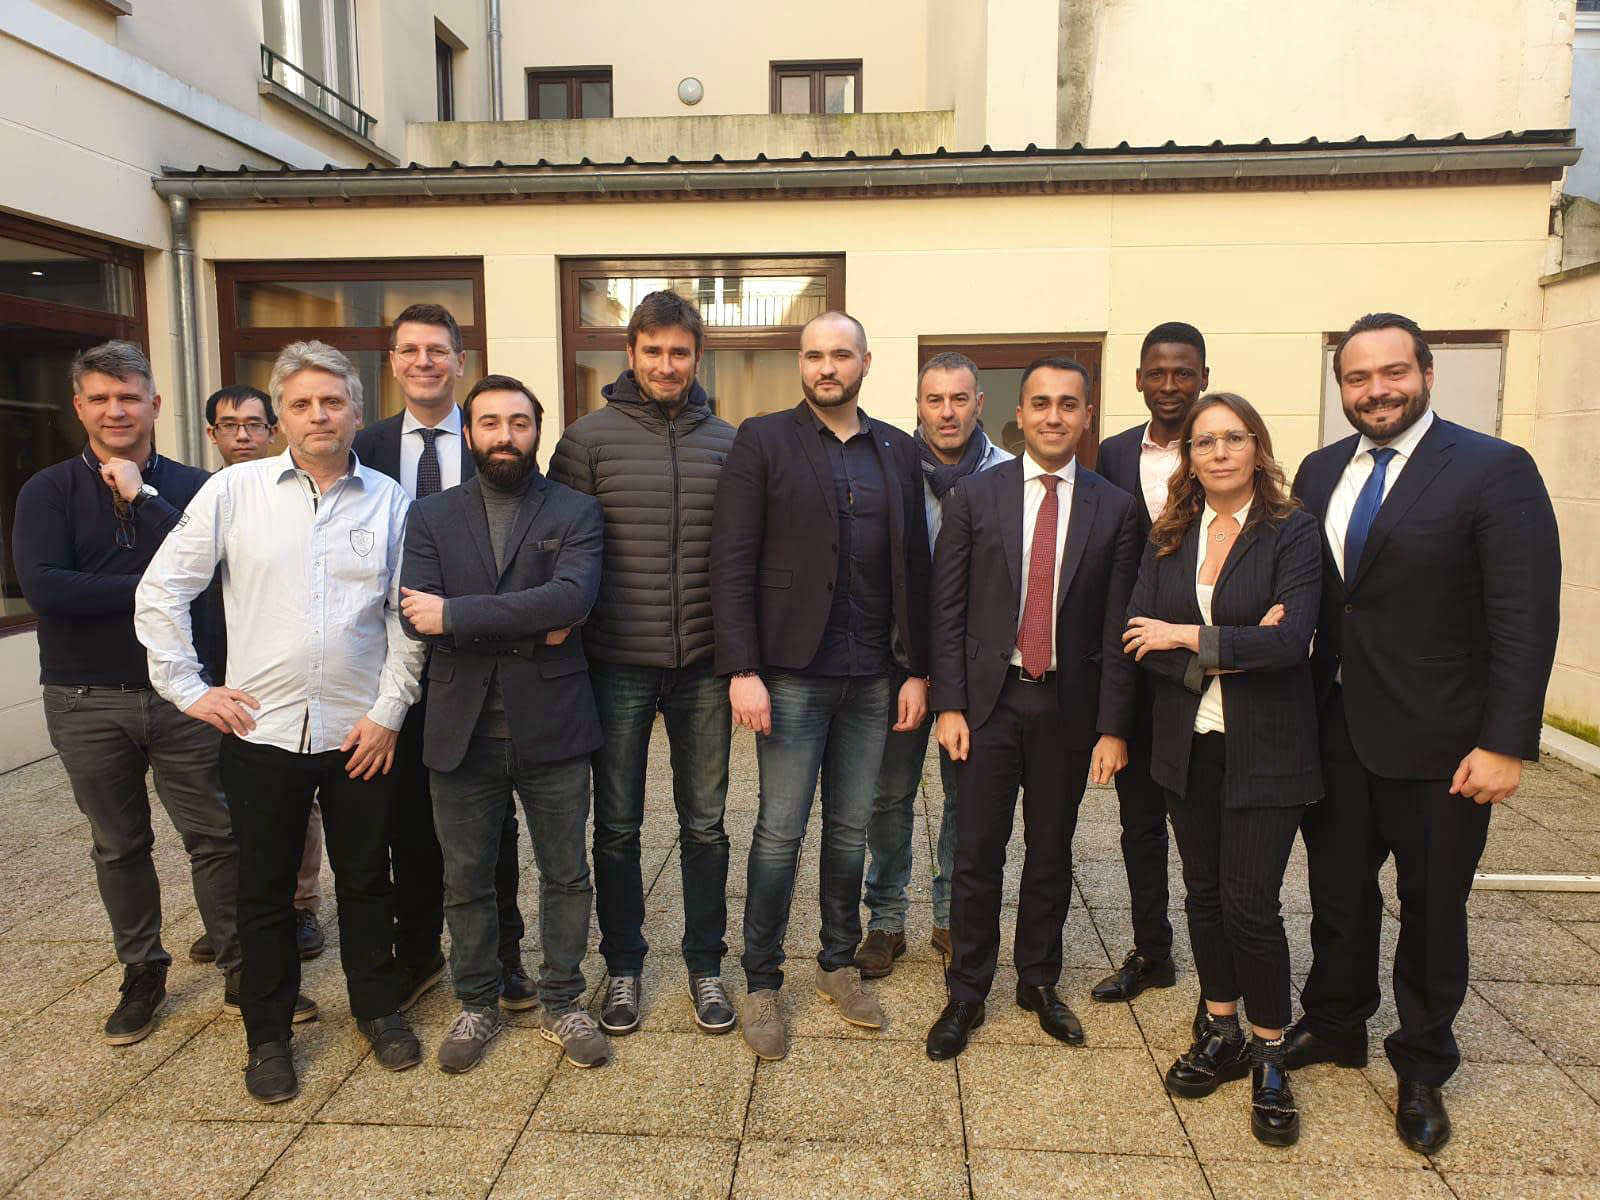 In this photo taken on Tuesday, Feb. 5, 2019 near Paris, Christophe Chalencon, 5th from right, one of the leading figures of the yellow vest movement, poses for a group photo with yellow vests' members and Italy's Five-Star Movements' leaders Luigi Di Maio, 4th from right, and Alessandro Di Battista, 6th from left. France kept up pressure on Italy Friday amid their biggest diplomatic spat since World War II, as business leaders from both countries appealed to their leaders to restore calm. The main trigger for the crisis appeared to be Di Maio's meeting in a Paris suburb this week with members of the yellow vest movement seeking seats in the European Parliament. (Five-Star Movement via AP)